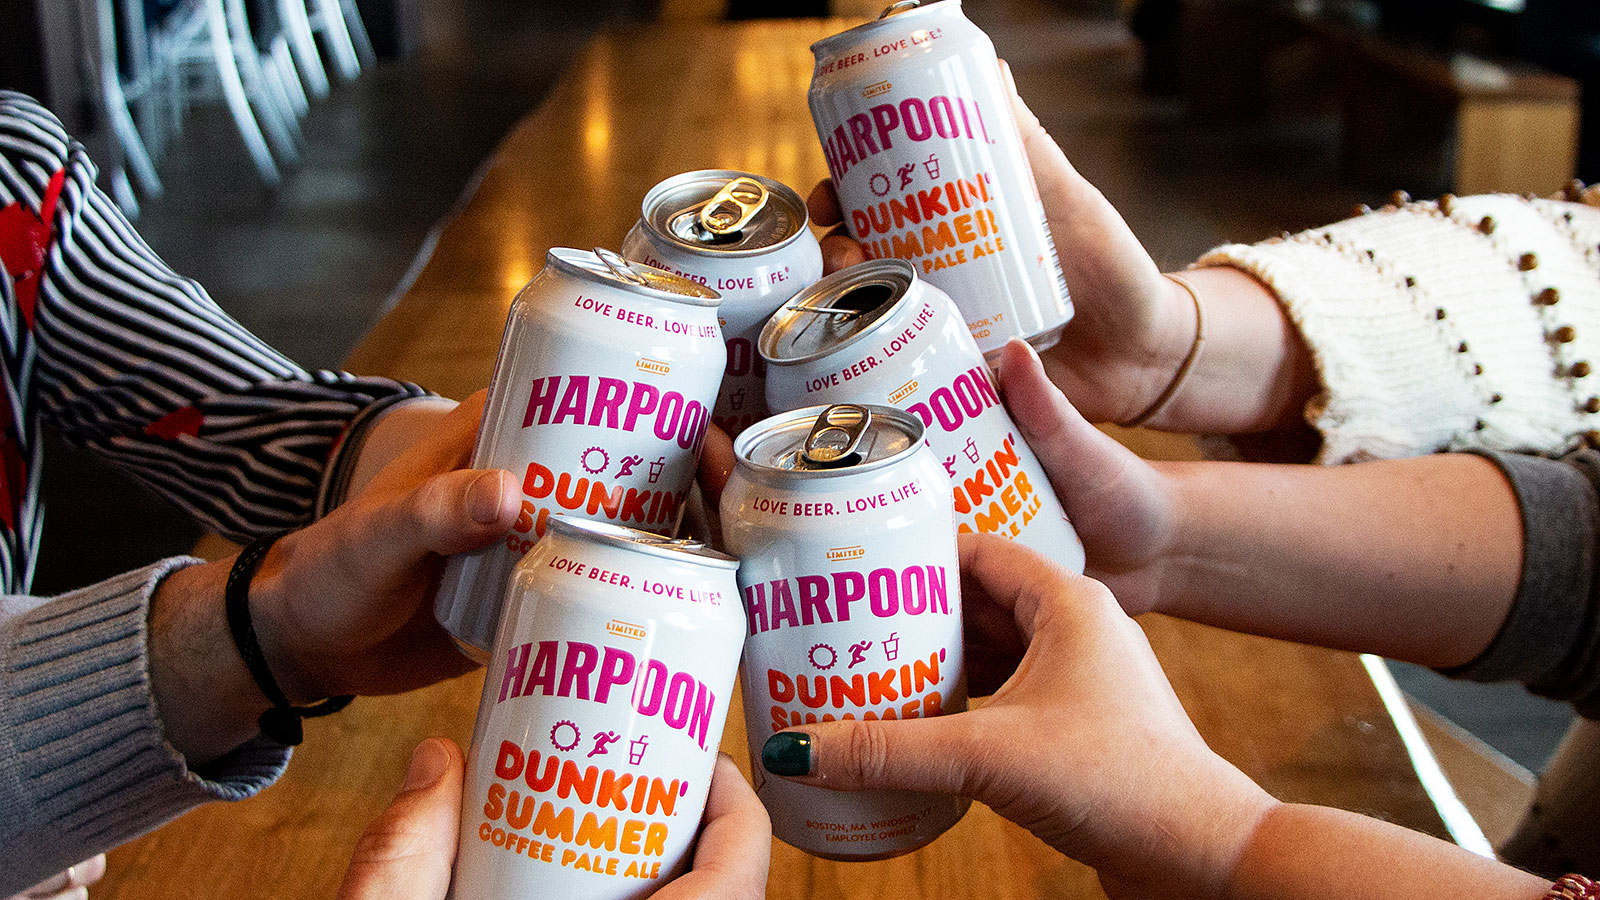 Cool summer: Dunkin' Donuts set to release coffee flavored beer